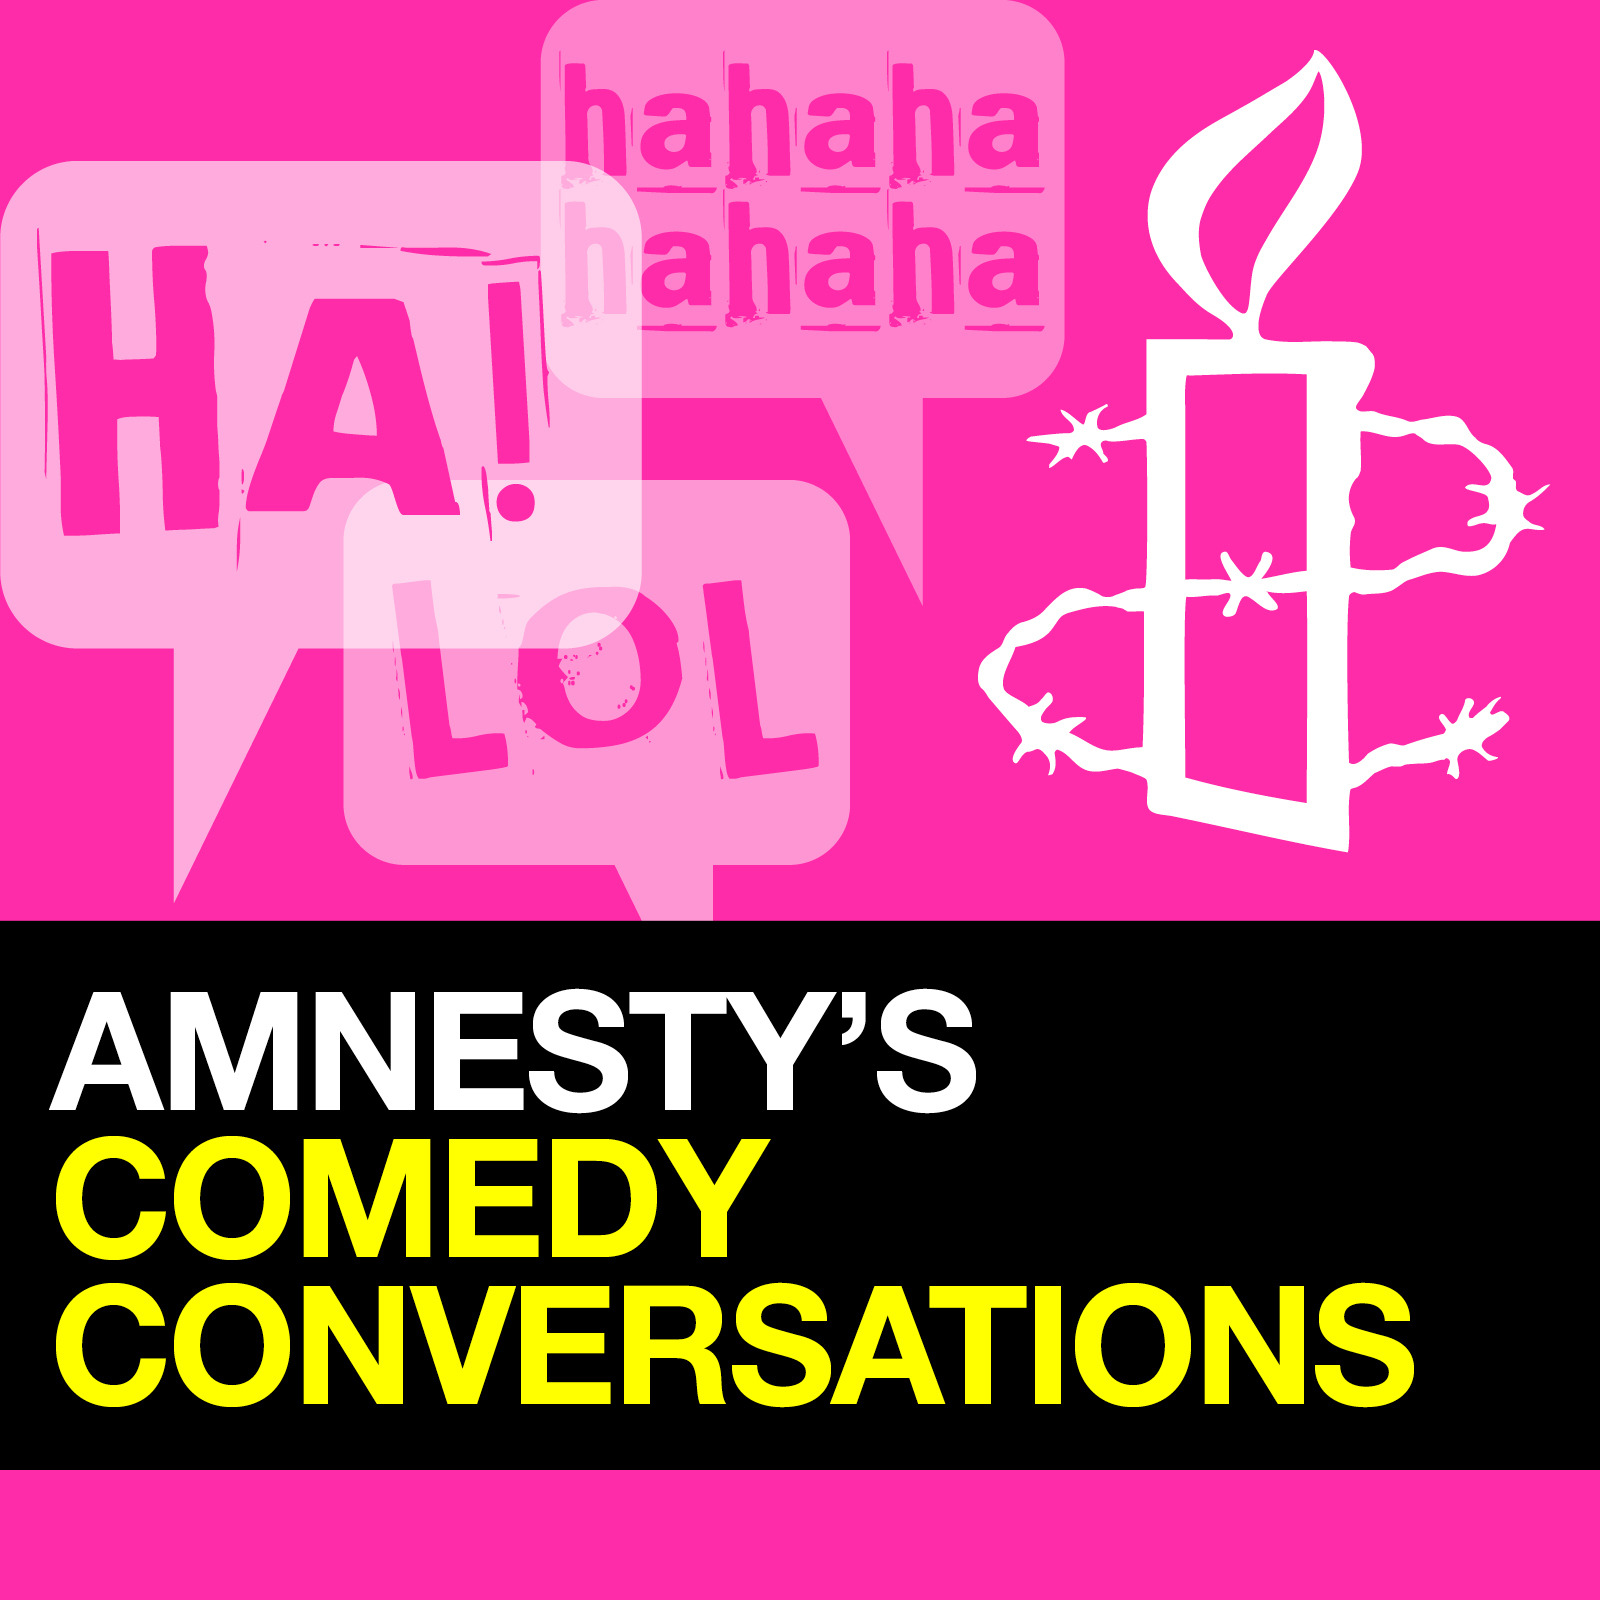 Amnesty's Comedy Conversations